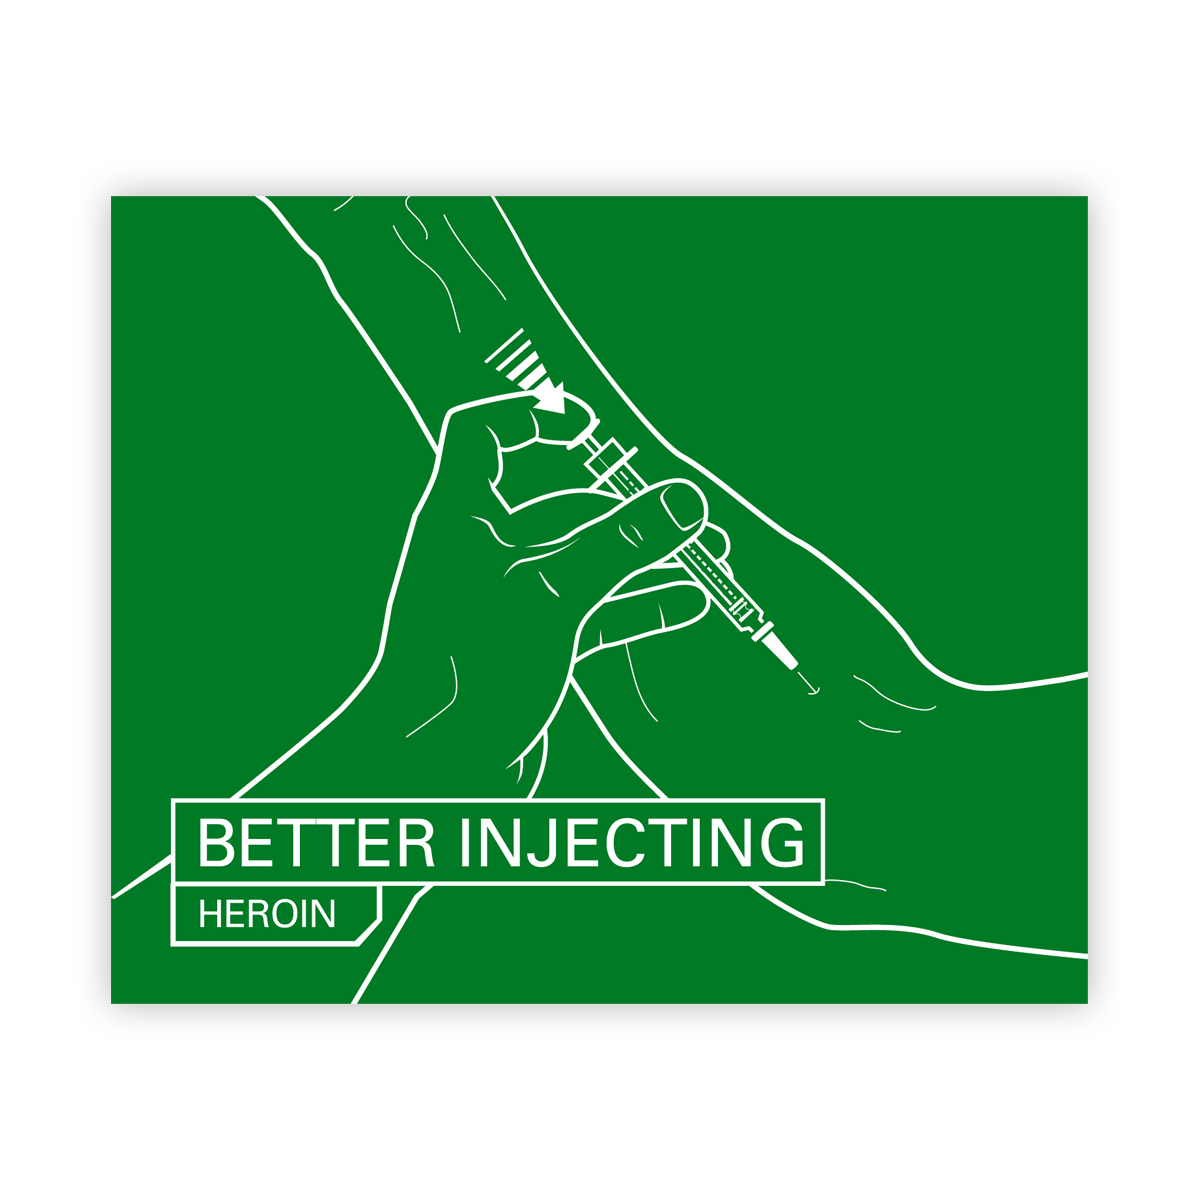 Better injecting